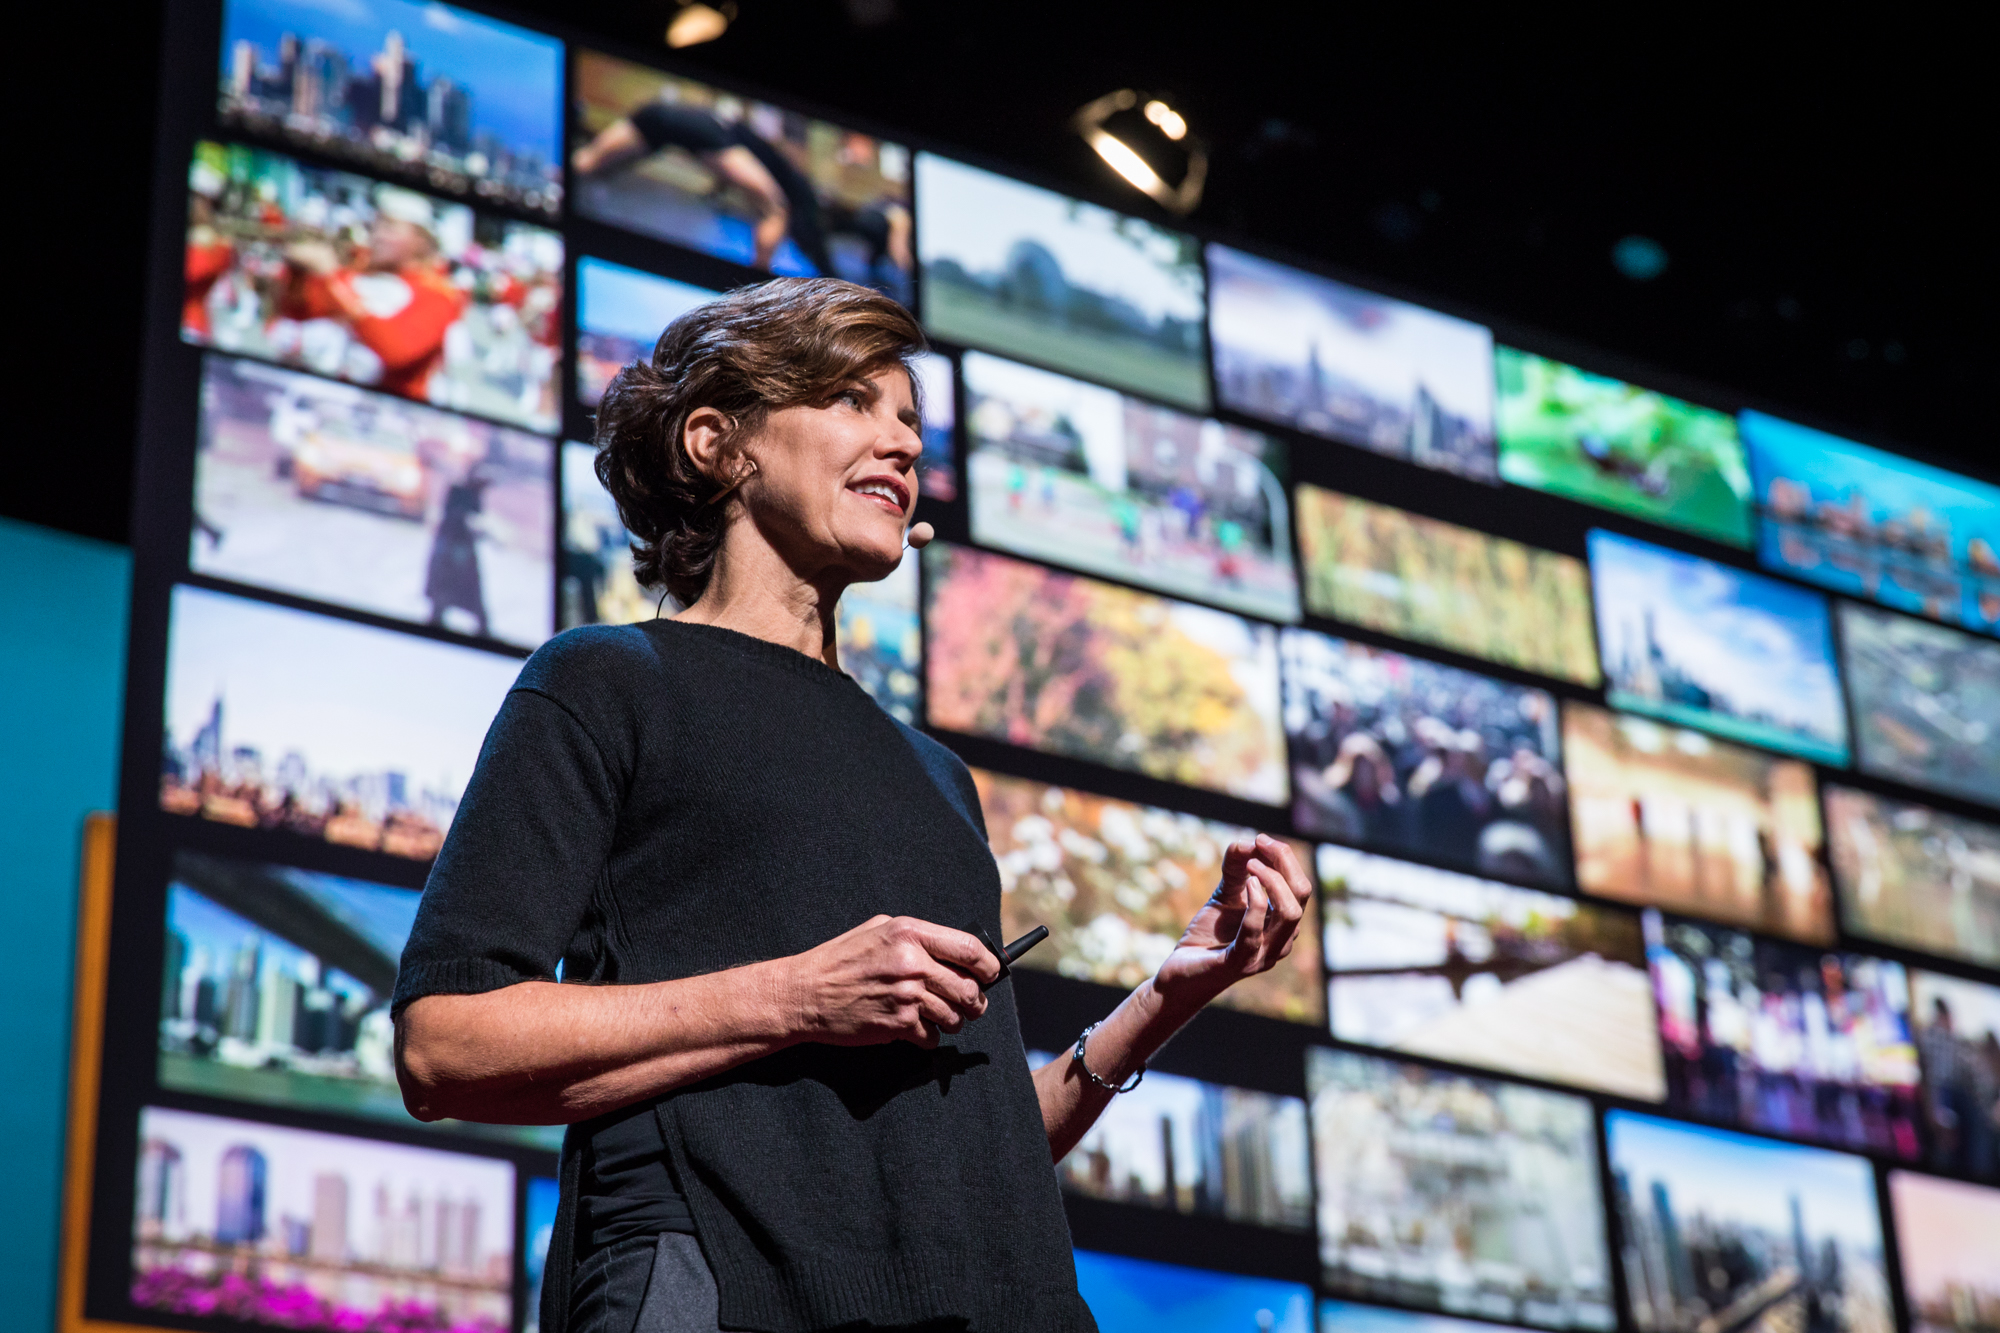 Jeanne Gang at TEDWomen 2016 - It's About Time, October 26-28, 2016, Yerba Buena Centre for the Arts, San Francisco, California. Photo: Marla Aufmuth / TED